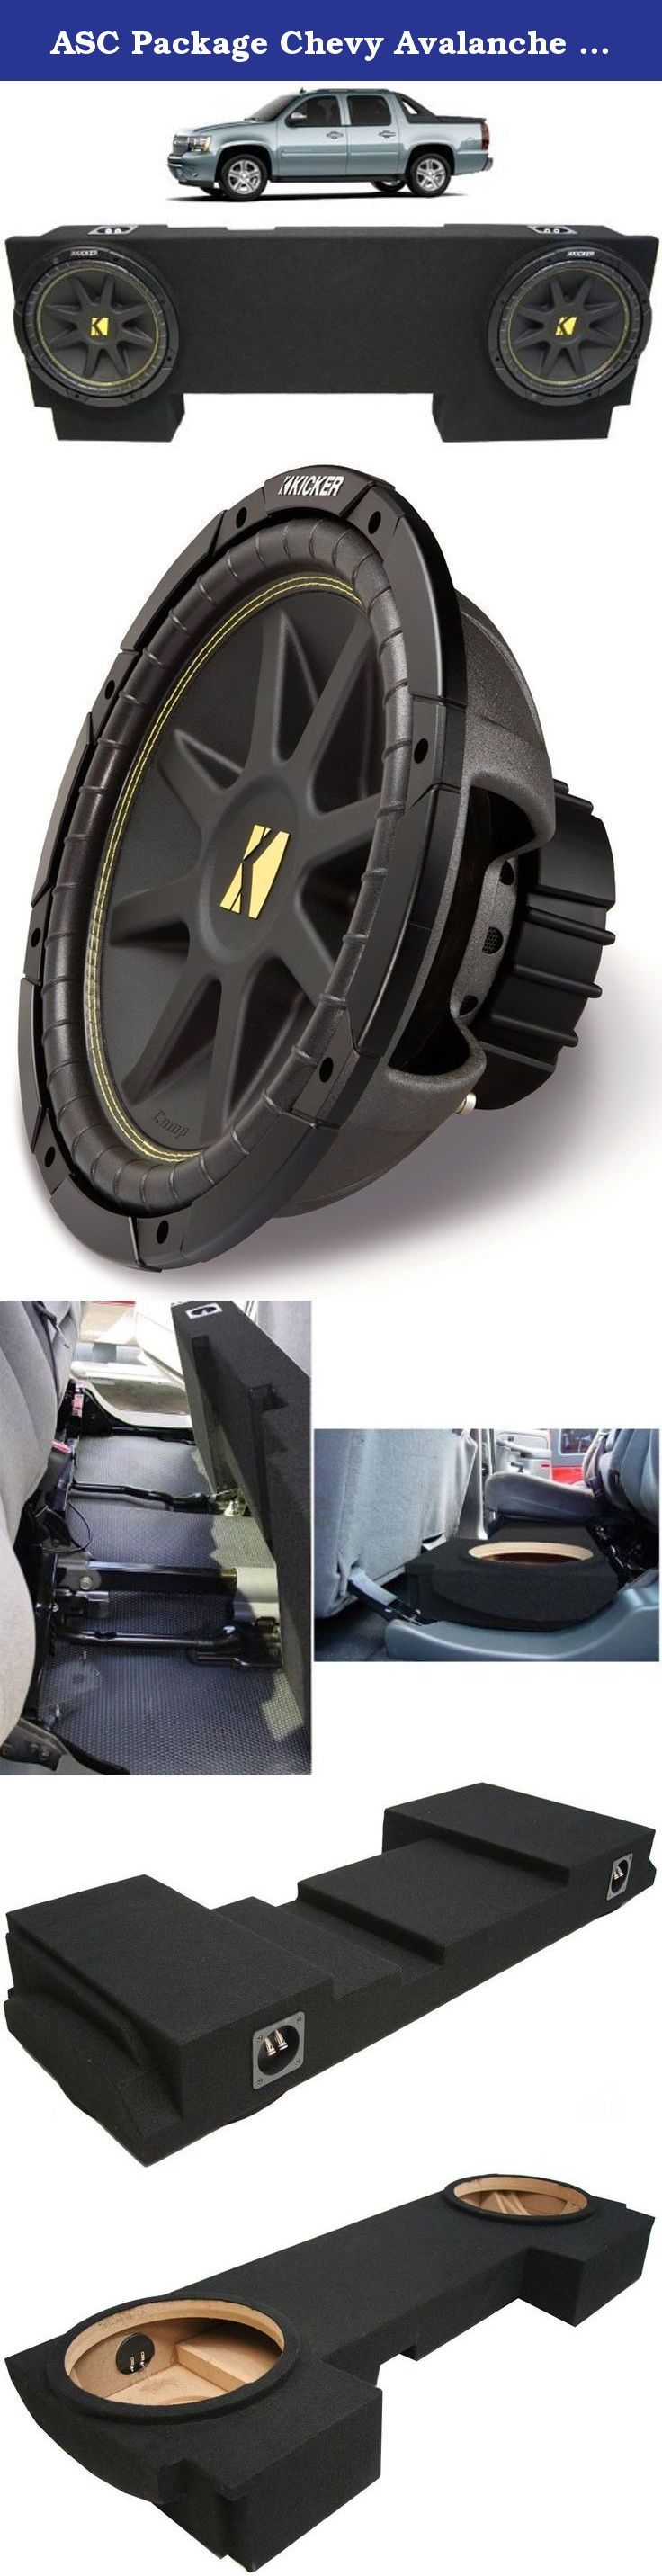 Asc package chevy avalanche 02 13 dual 12 kicker c12 subwoofer under seat sub